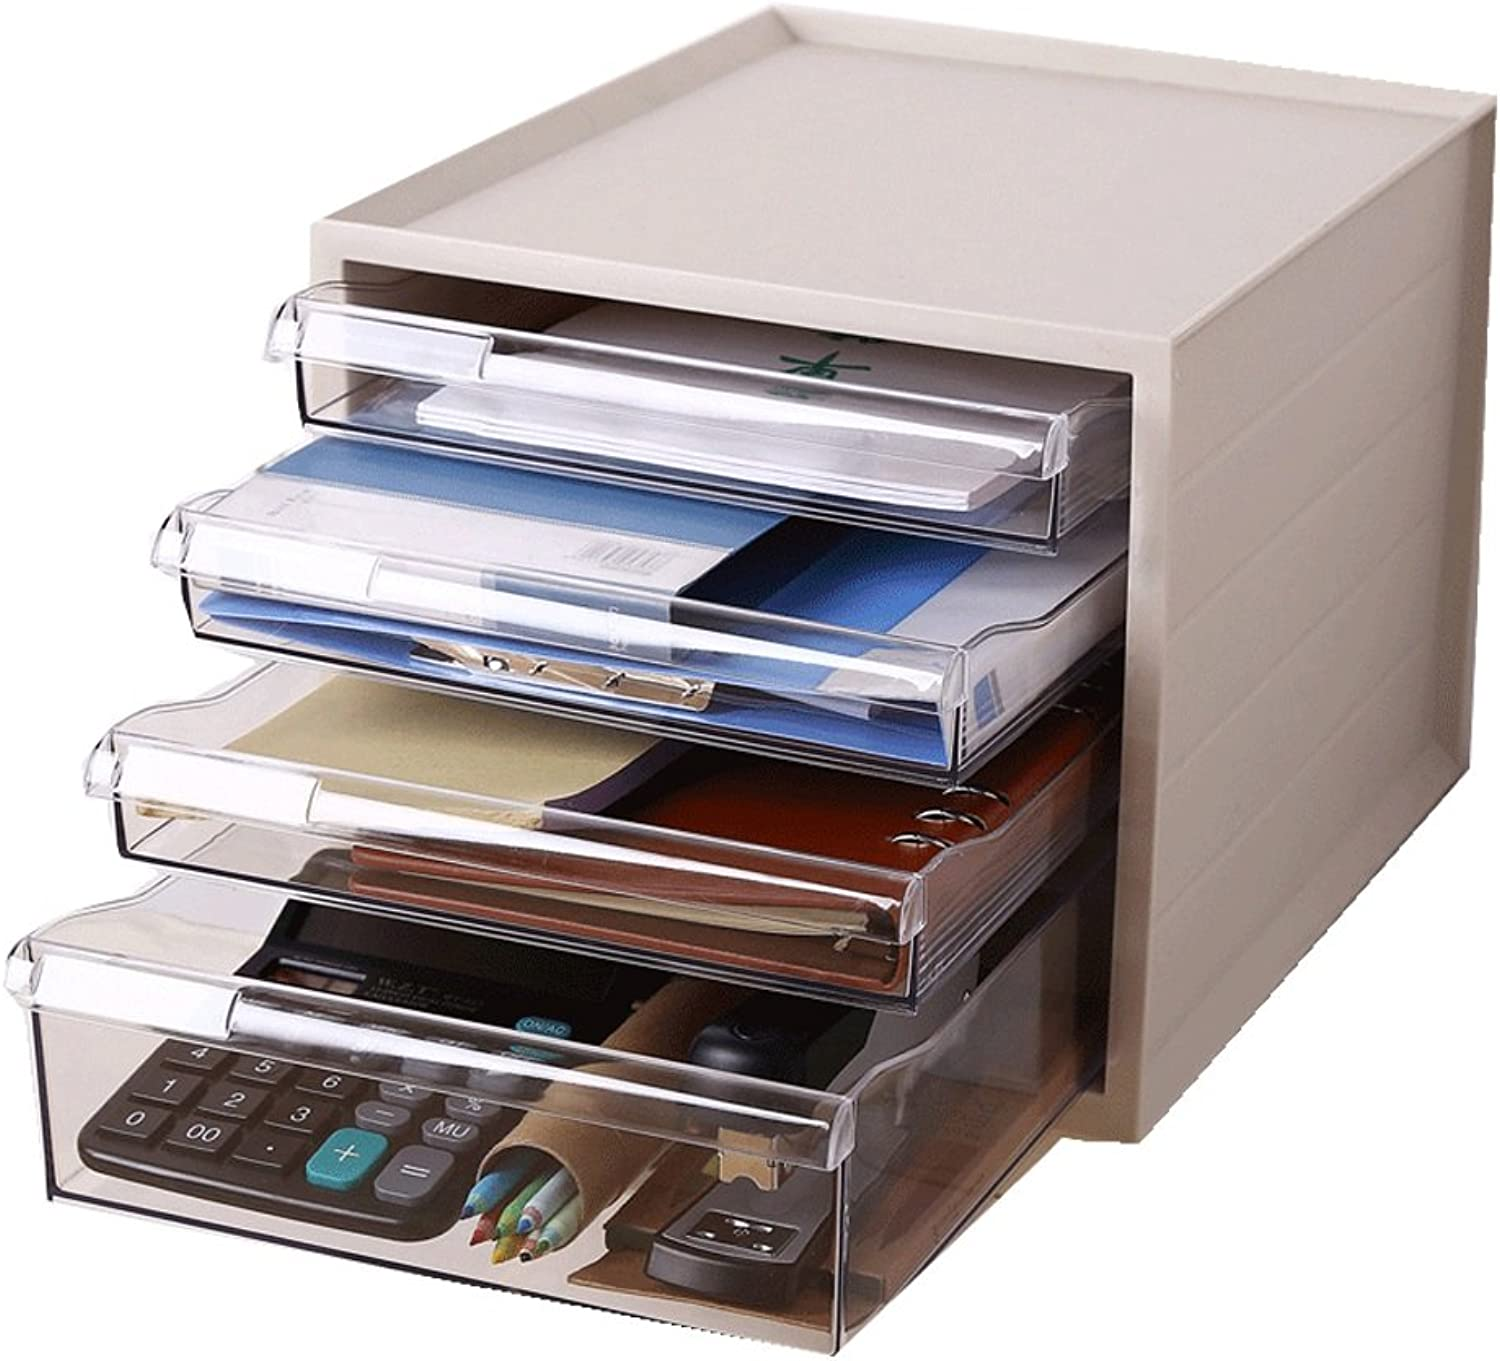 Drawer Set Desk Organiser Freestanding Bookcase with Label and 4 Closed Drawers for Home Office Supplies(27.5  33.5  25cm)